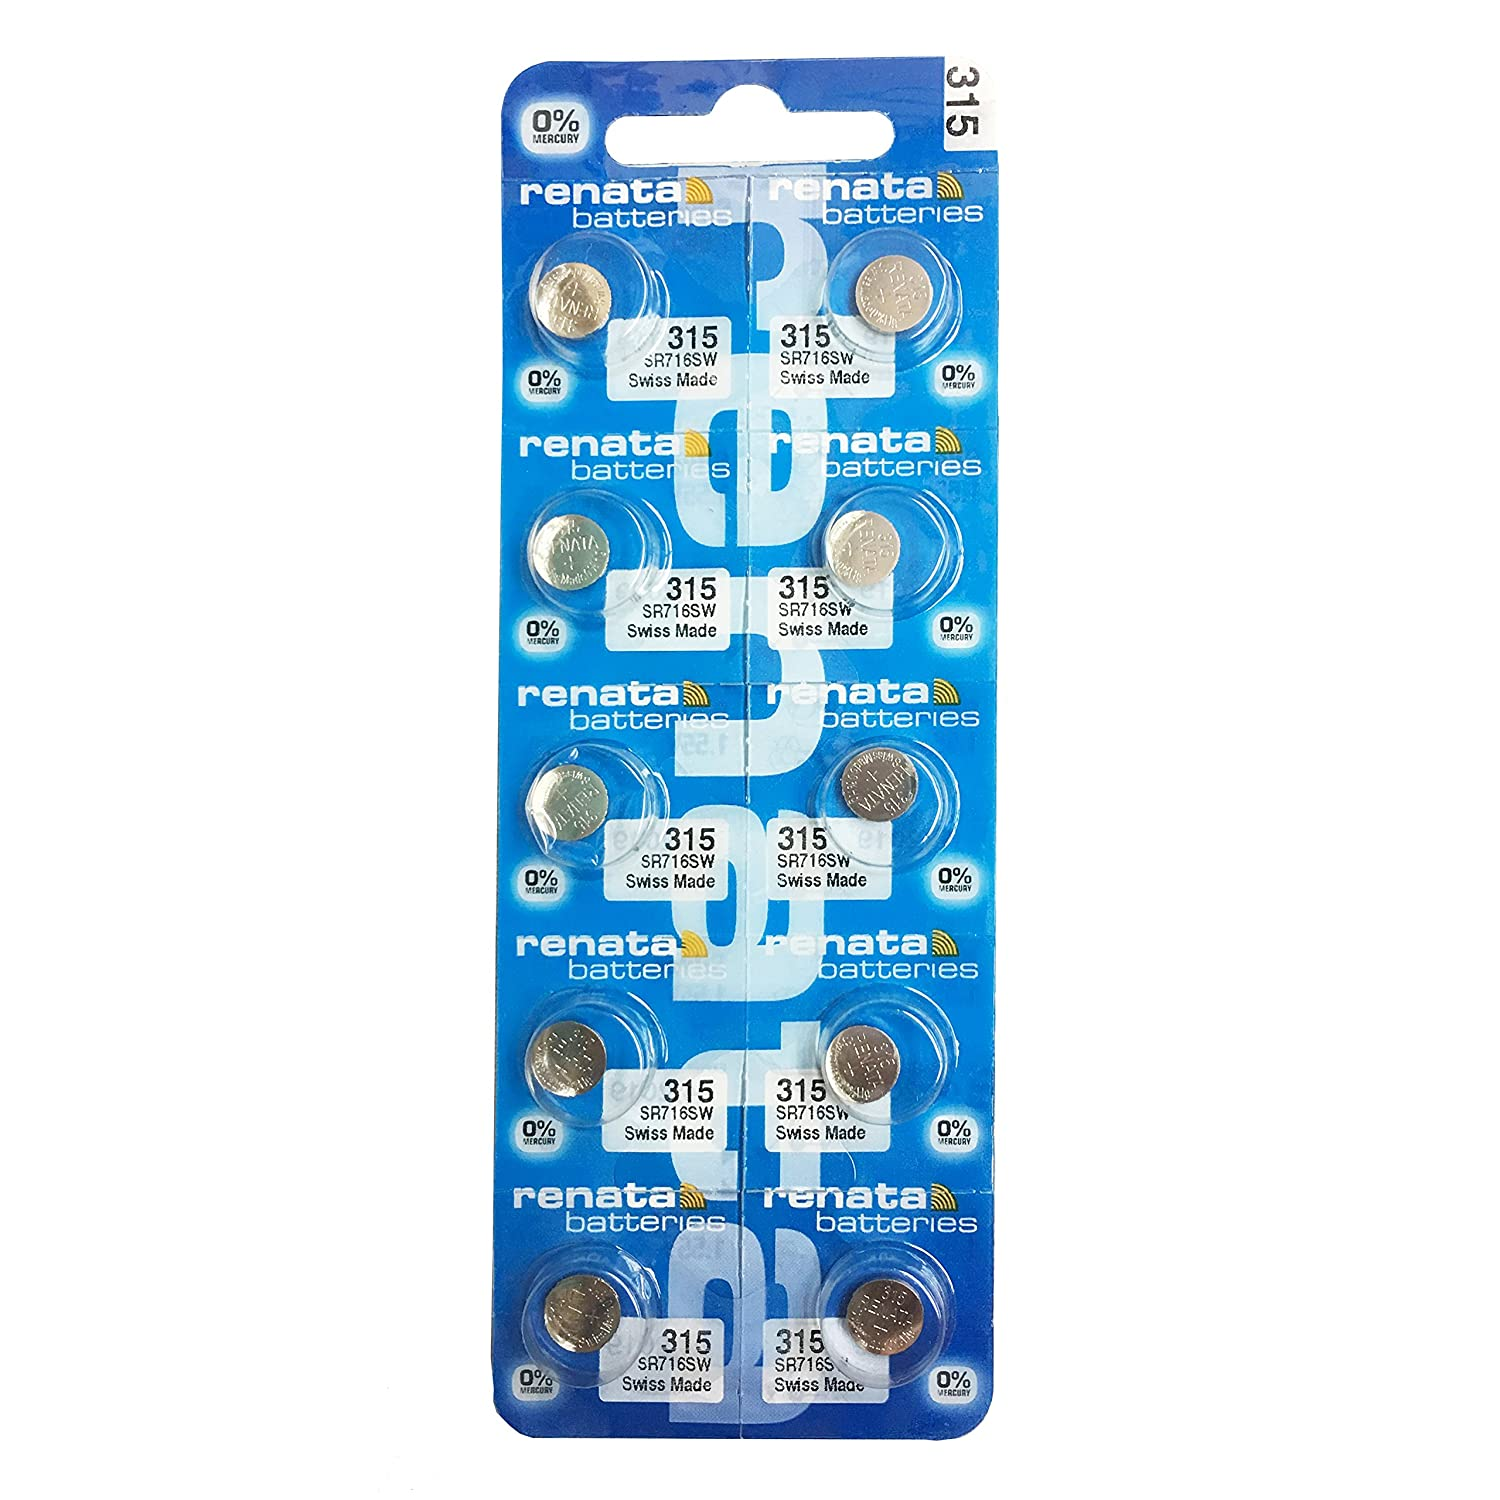 Pack of 10 Renata batteries, All sizes avail: 321, 364, 371, 373, 377, 379, 393, 394, 395, CR1216, CR1220, CR1616, CR1620, CR1632, CR2016, CR2025, CR2032, CR2325, CR2430, CR2450 & more